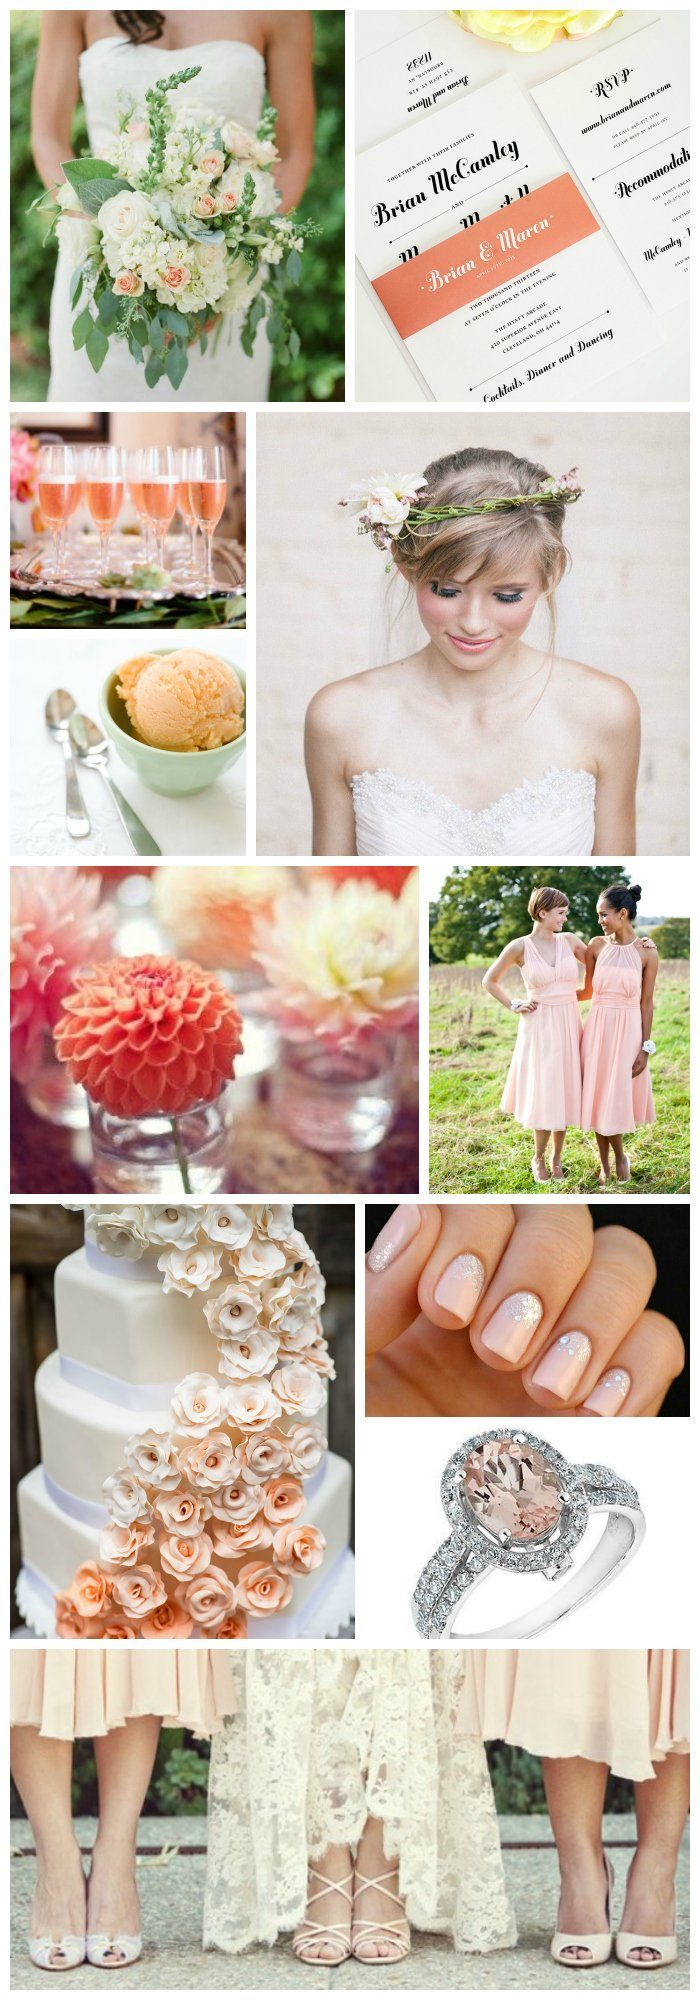 Wedding Inspiration in Peach